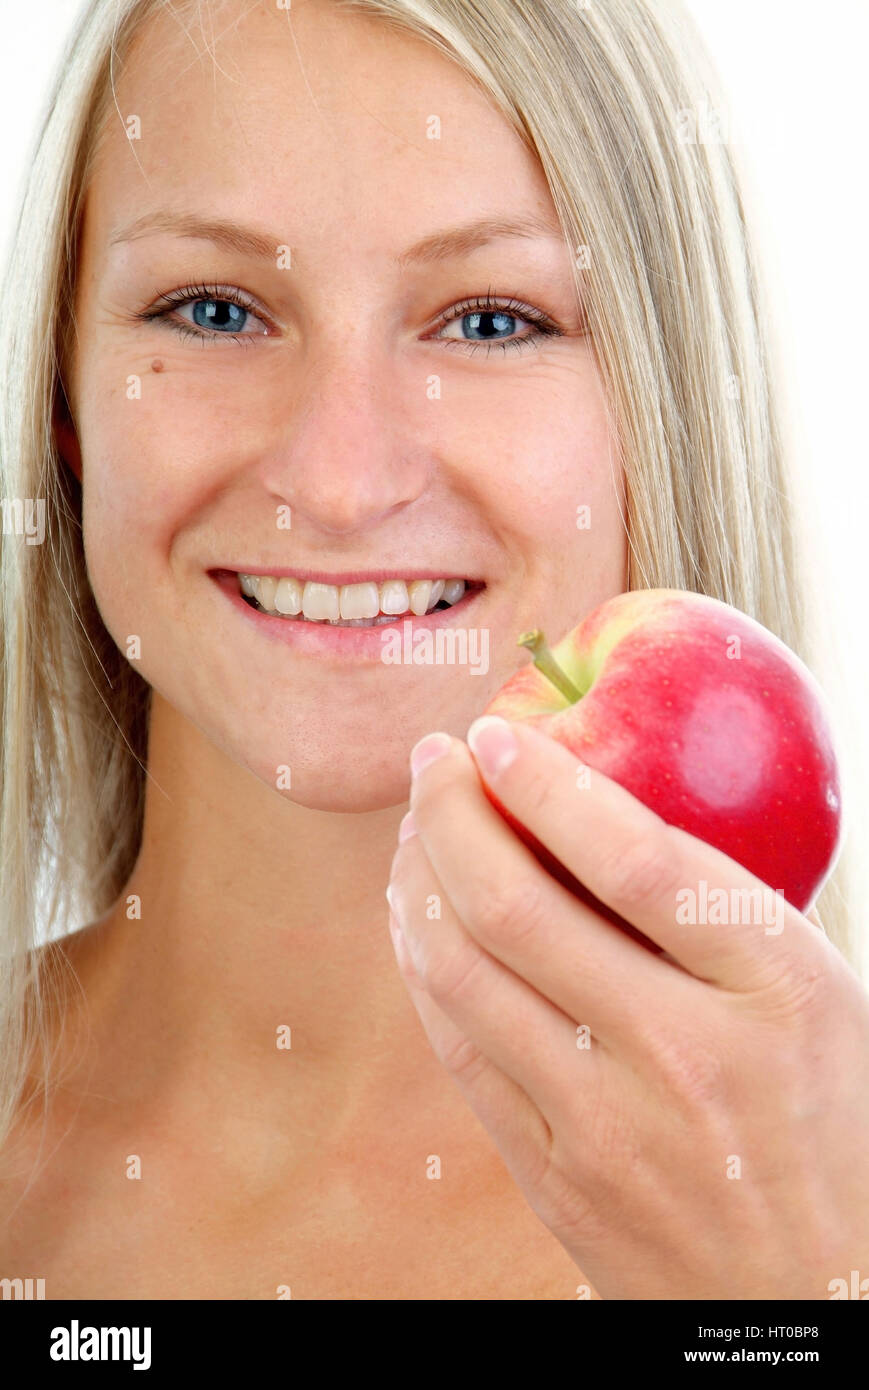 Junge, blonde Frau mit Apfel - young, blond woman with an apple - Stock Image